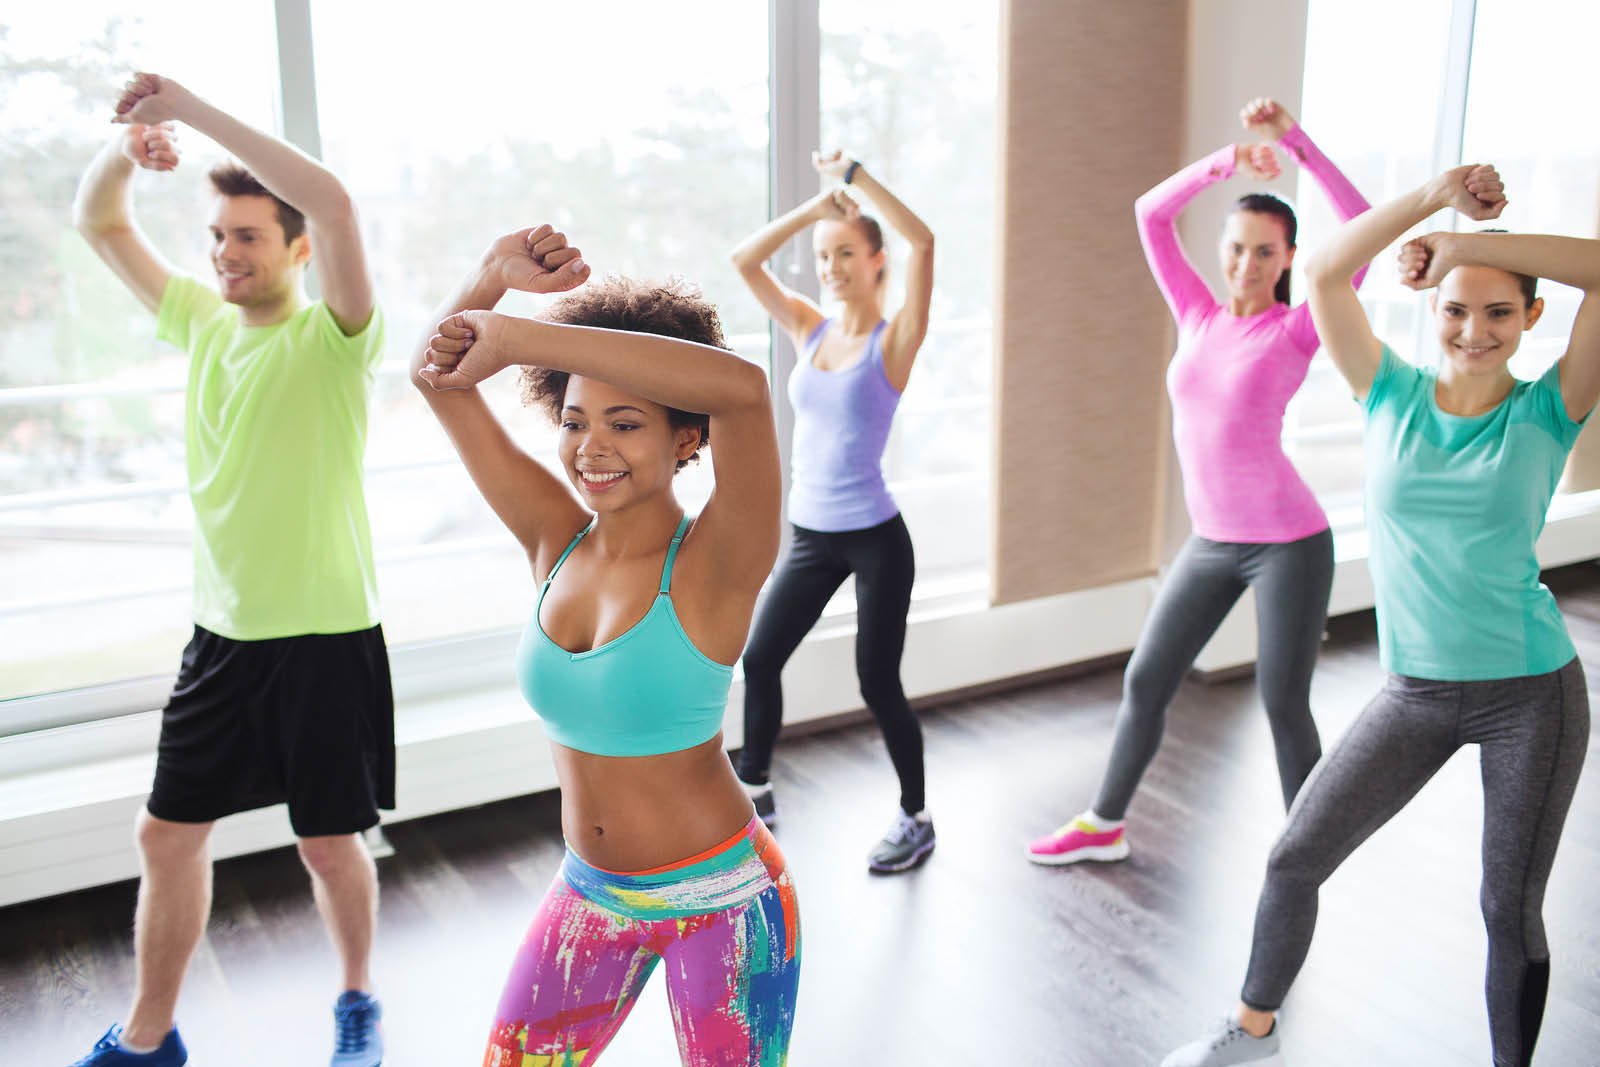 Group Exercise: The Group Exercise program at Century Fitness offers so many great ways to move you.